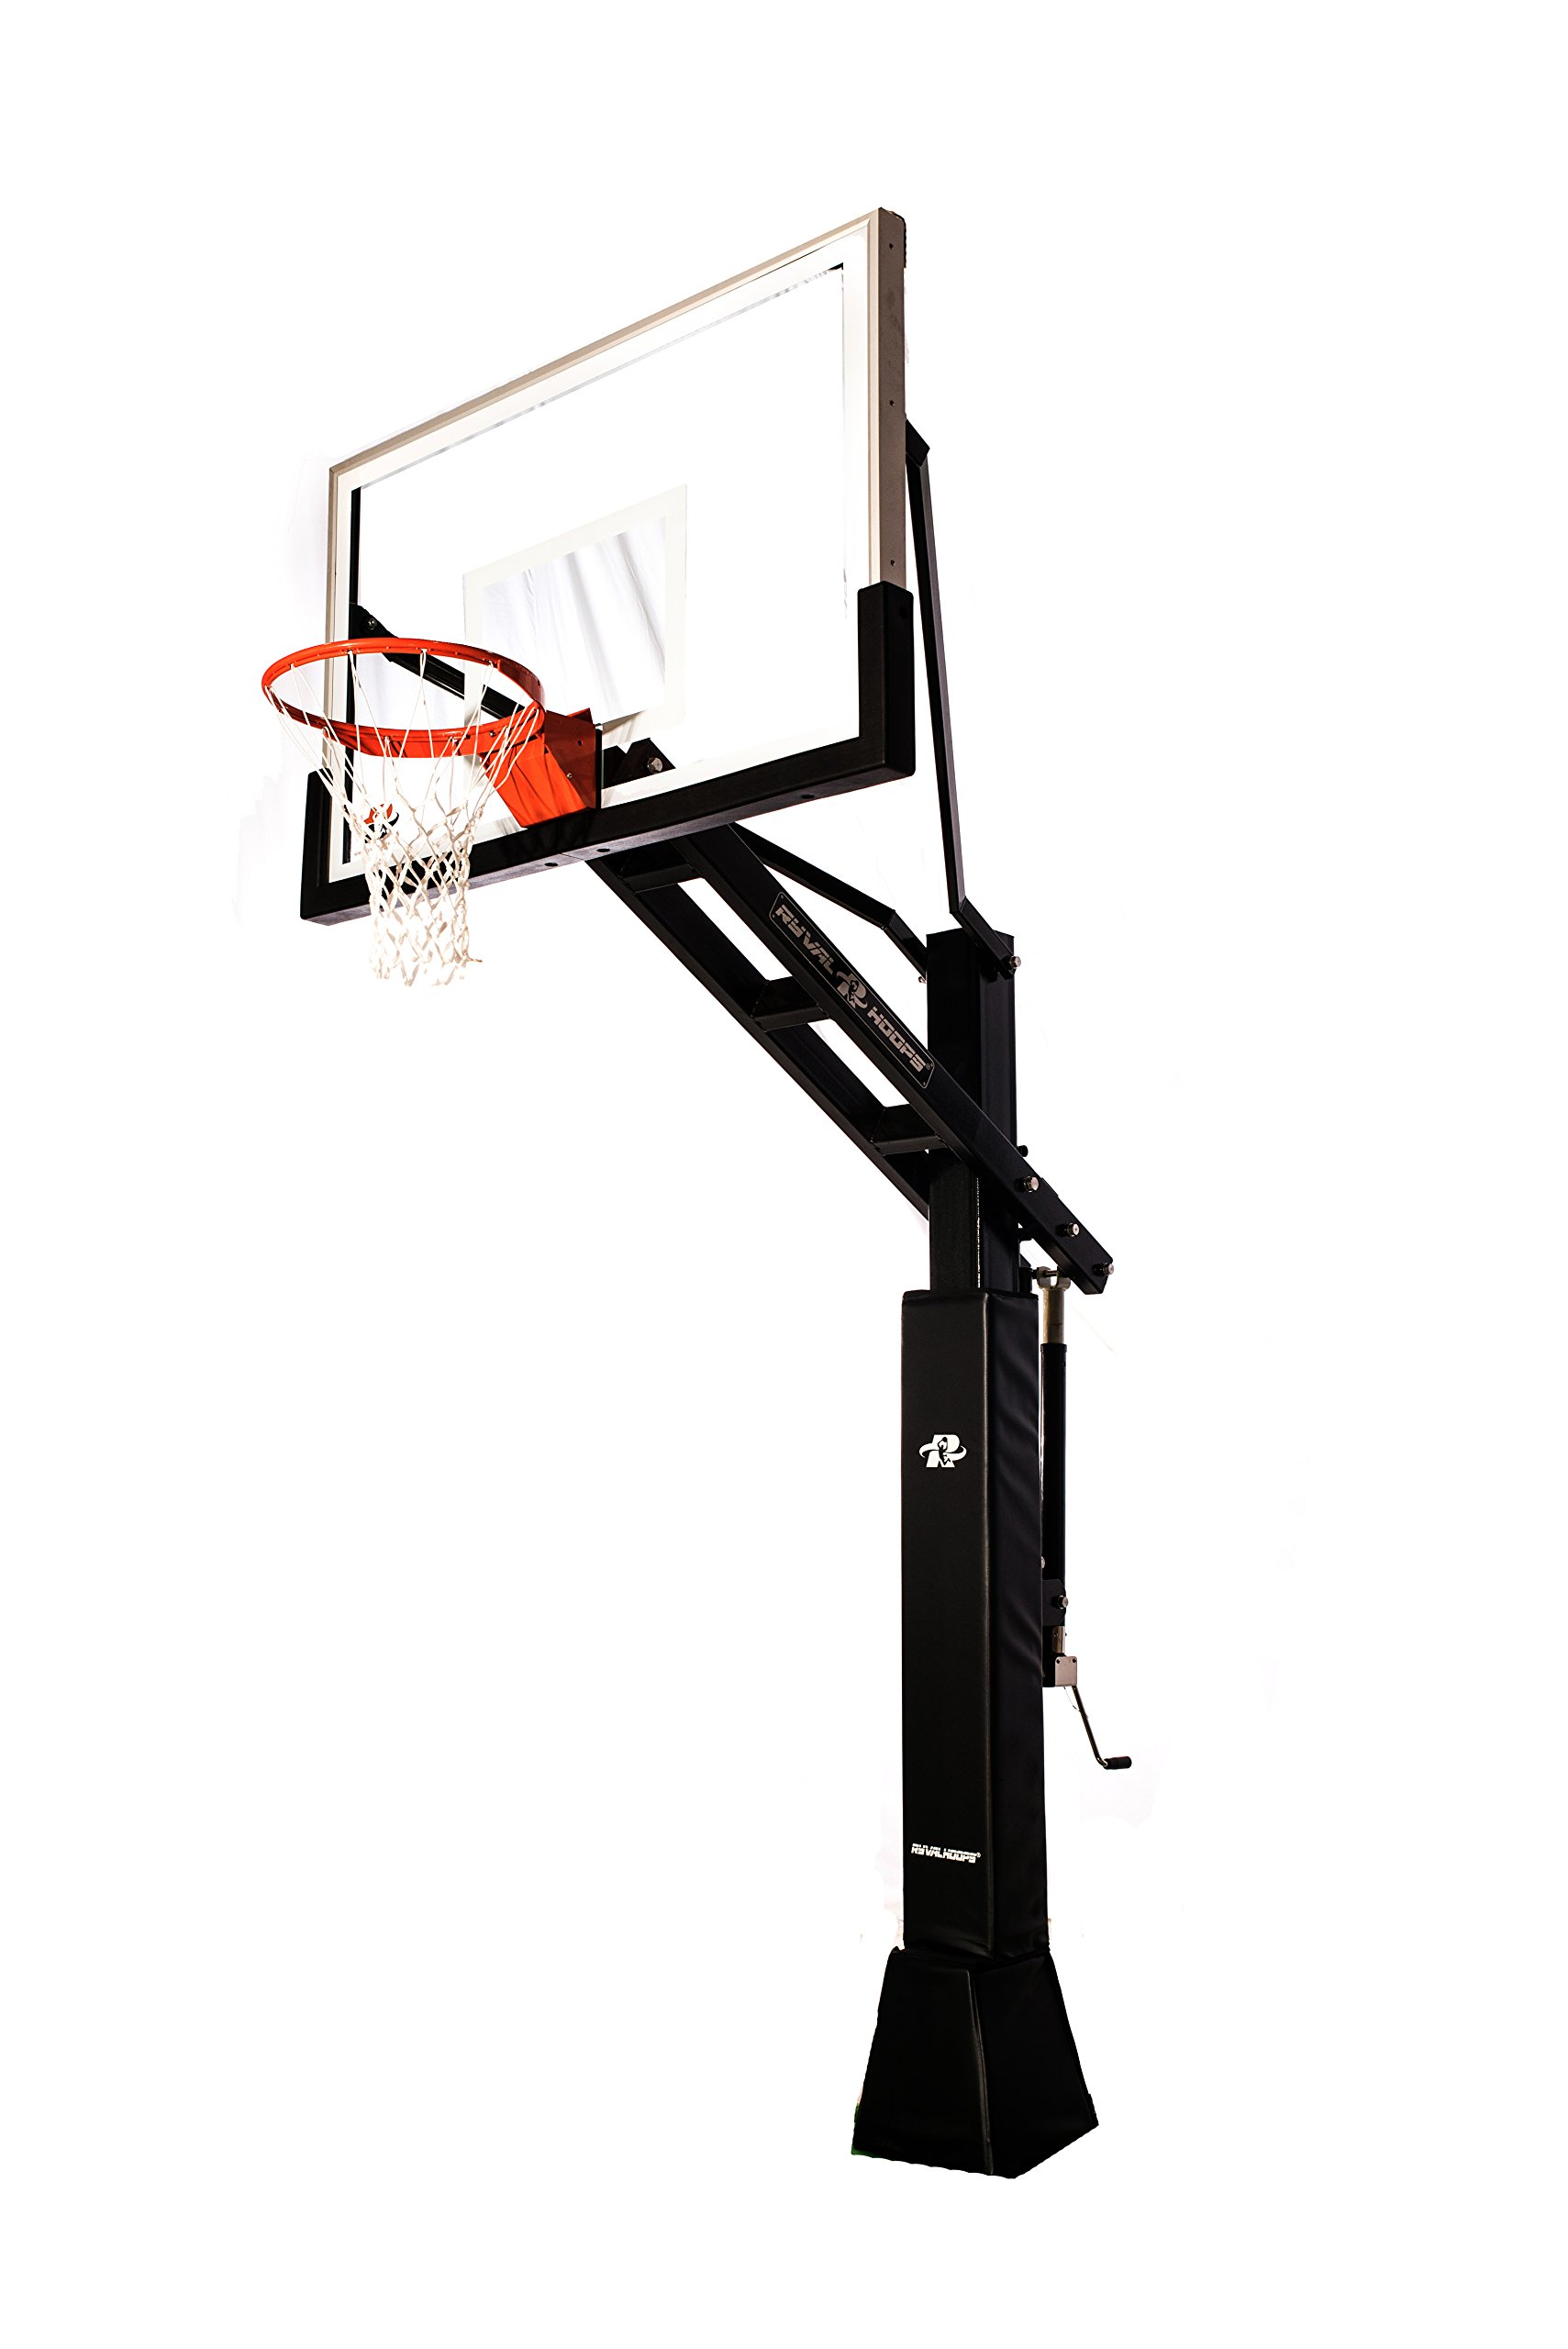 """Ryval C660 Basketball Hoop - 60"""" Clear -View Tempered Glass Backboard, Height Adjustable for Children & Adults, In Ground Basketball Goal, Dual Spring Heavy Duty Flex Rim"""